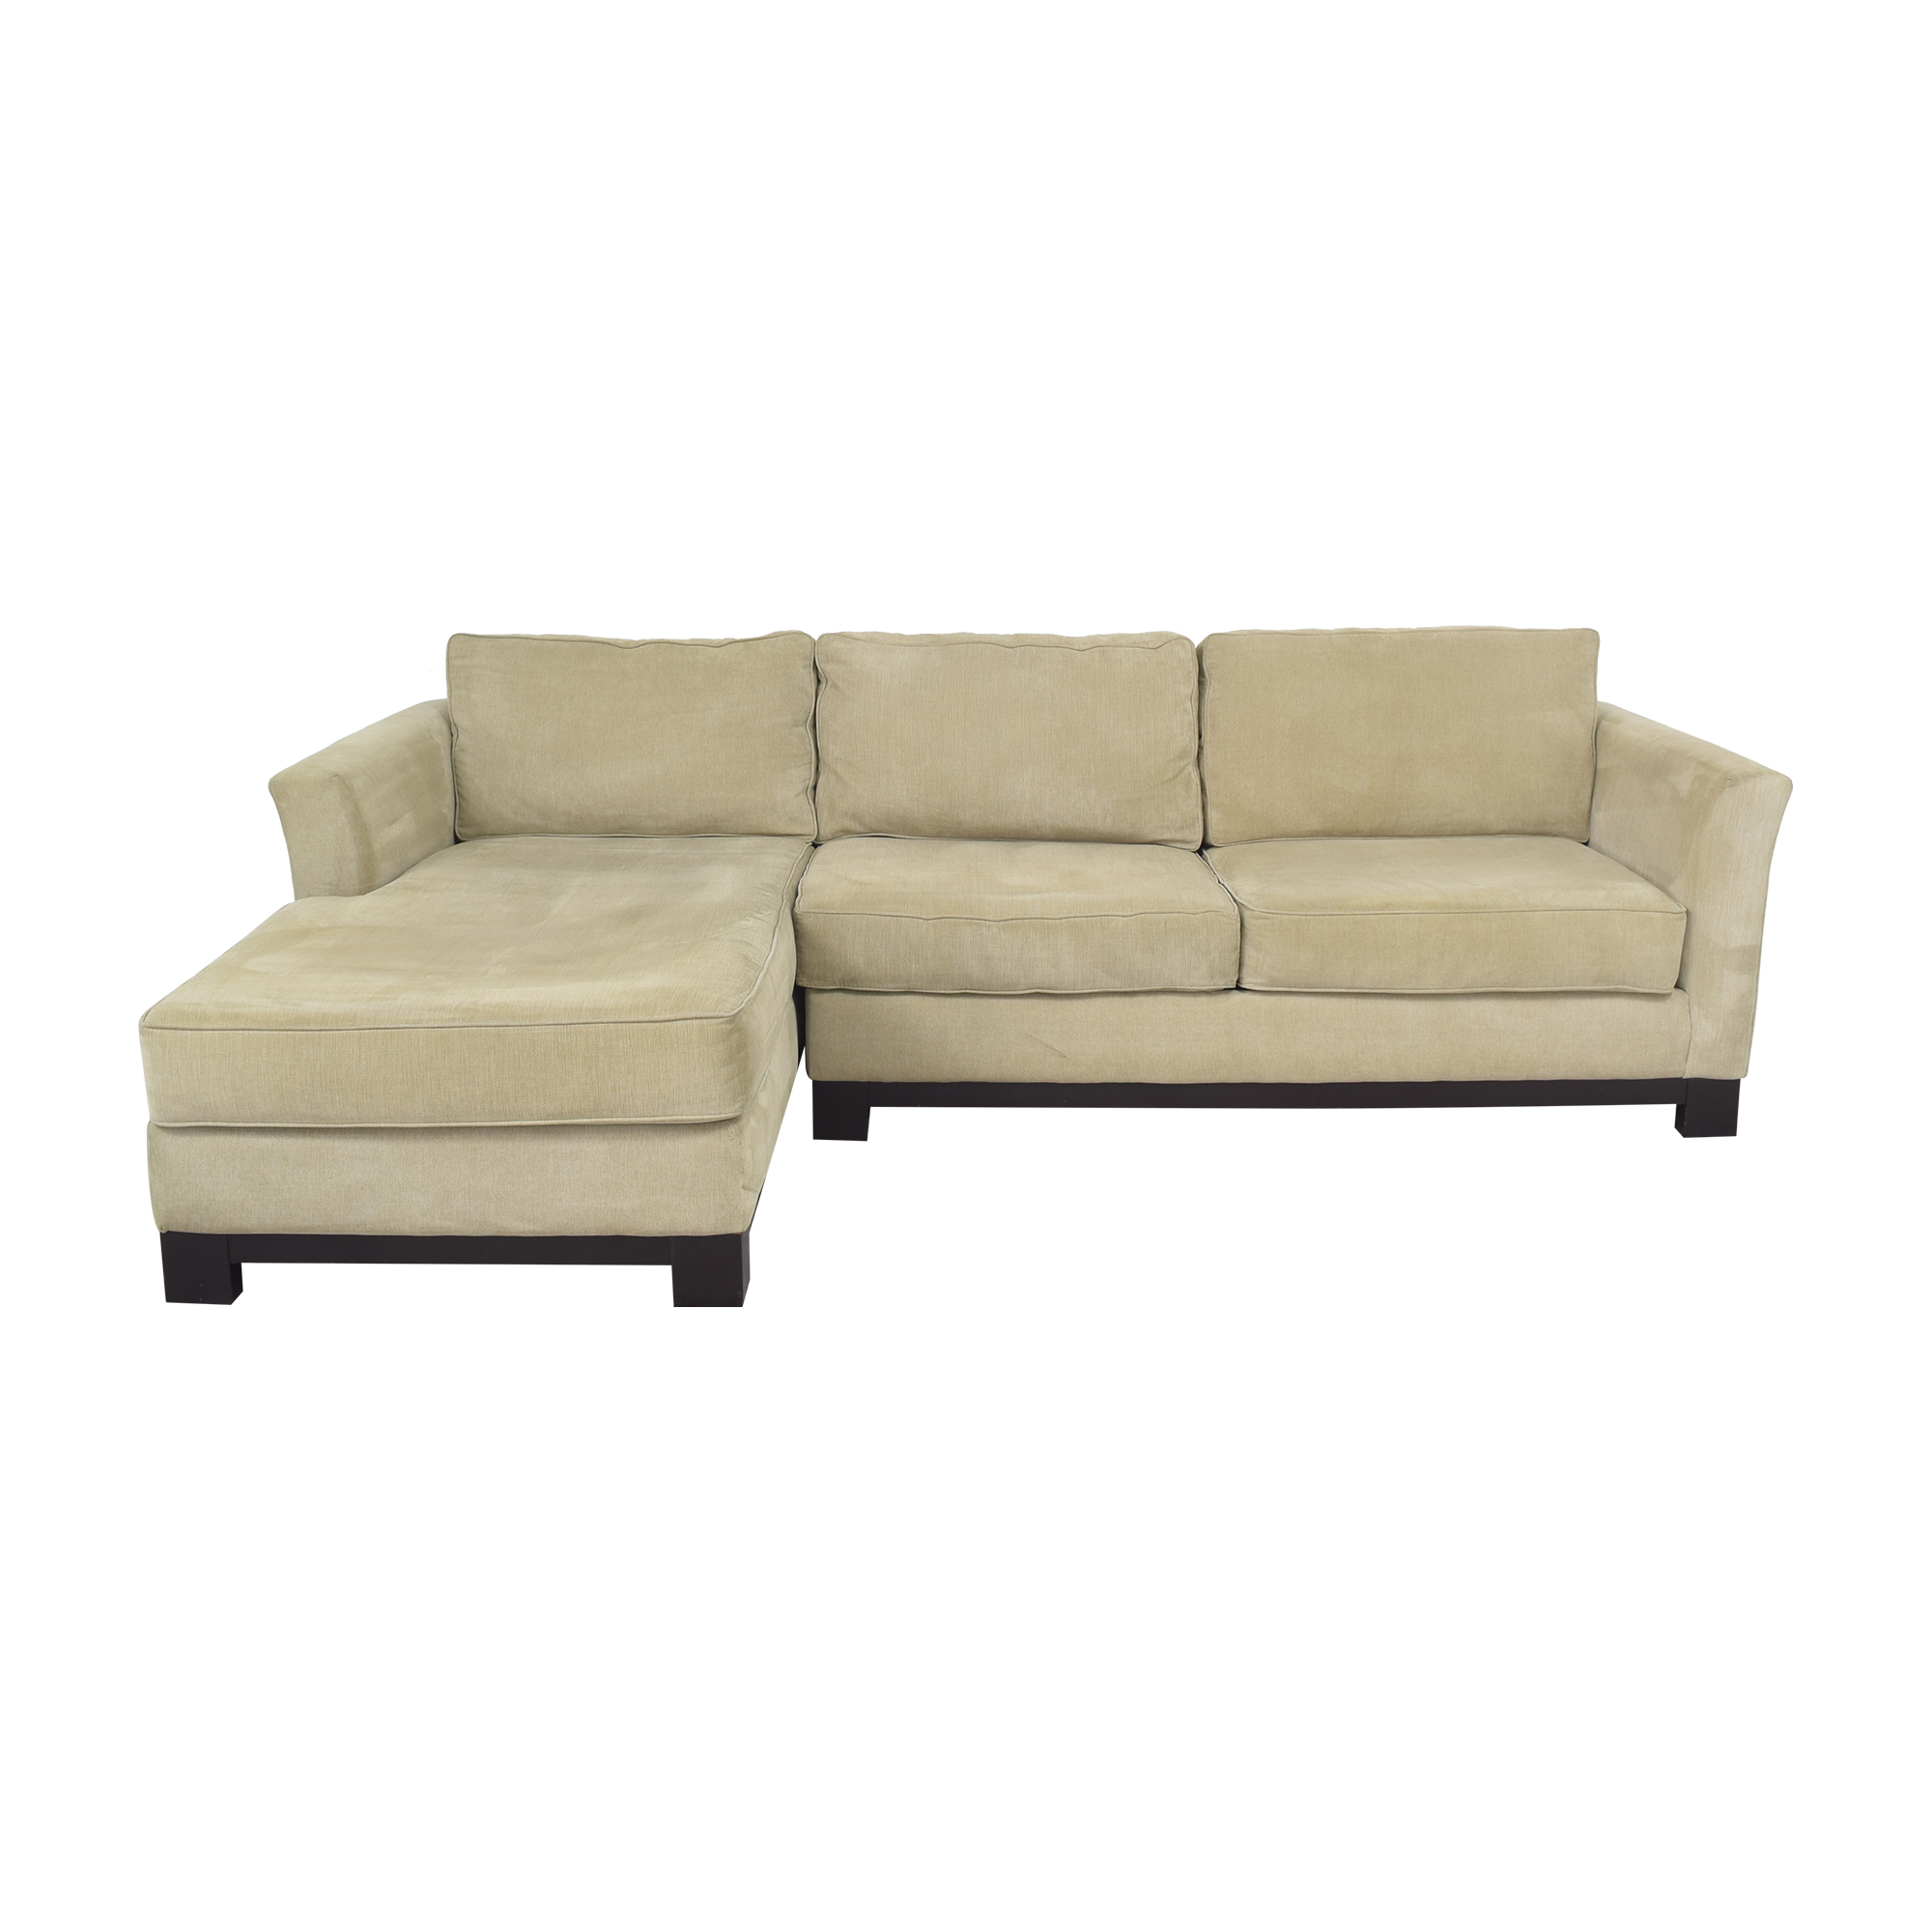 Macy's Macy's Elliot II Two Piece Chaise Sectional Sofa second hand